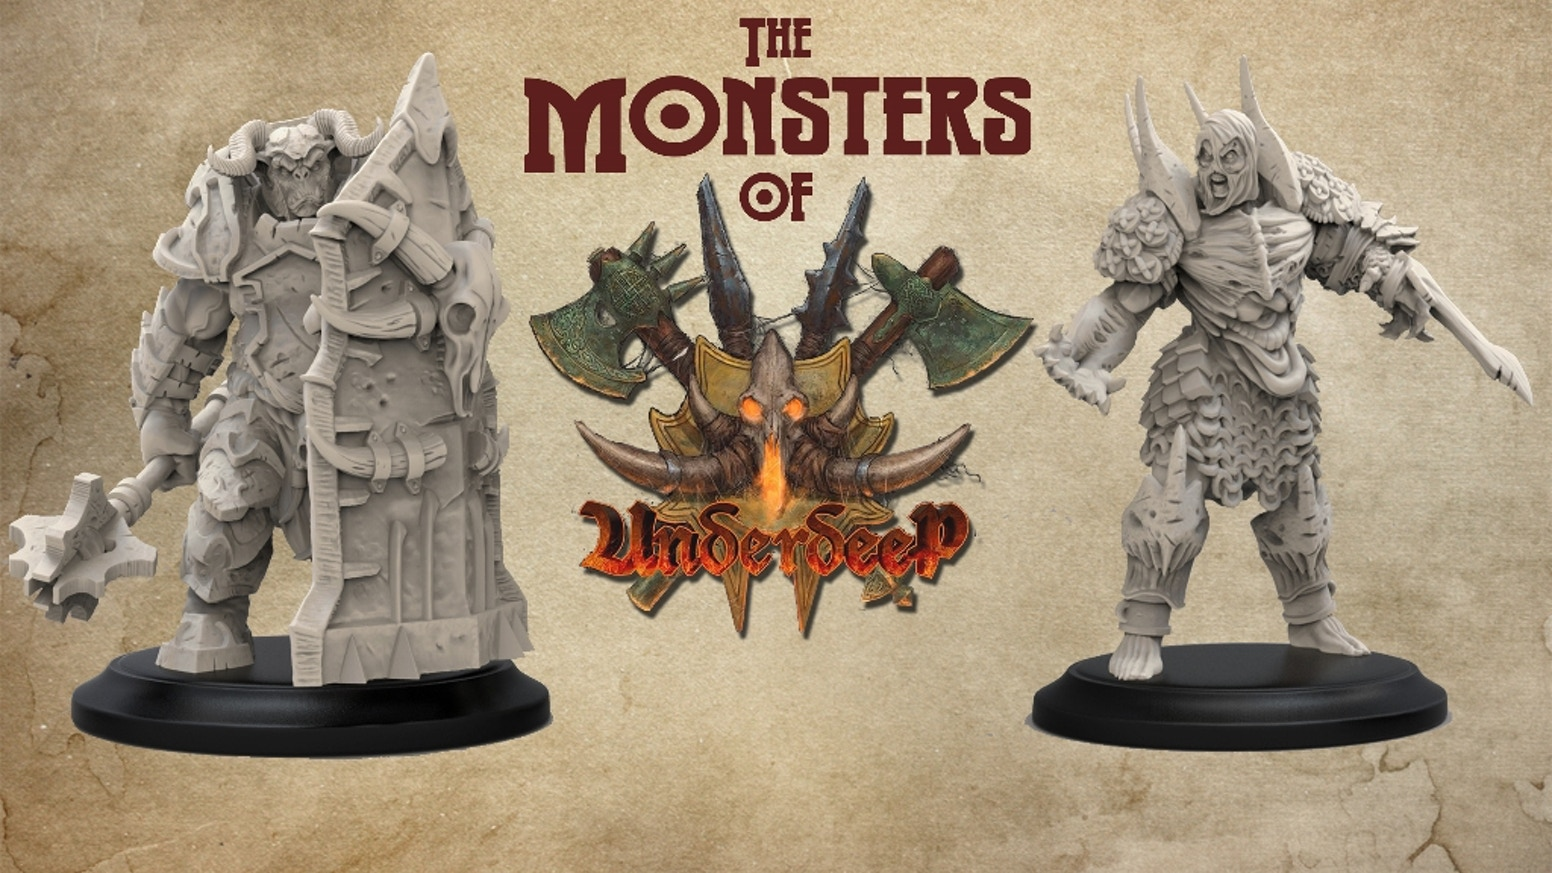 Minion Miniatures - The Monsters of Underdeep by Richard O